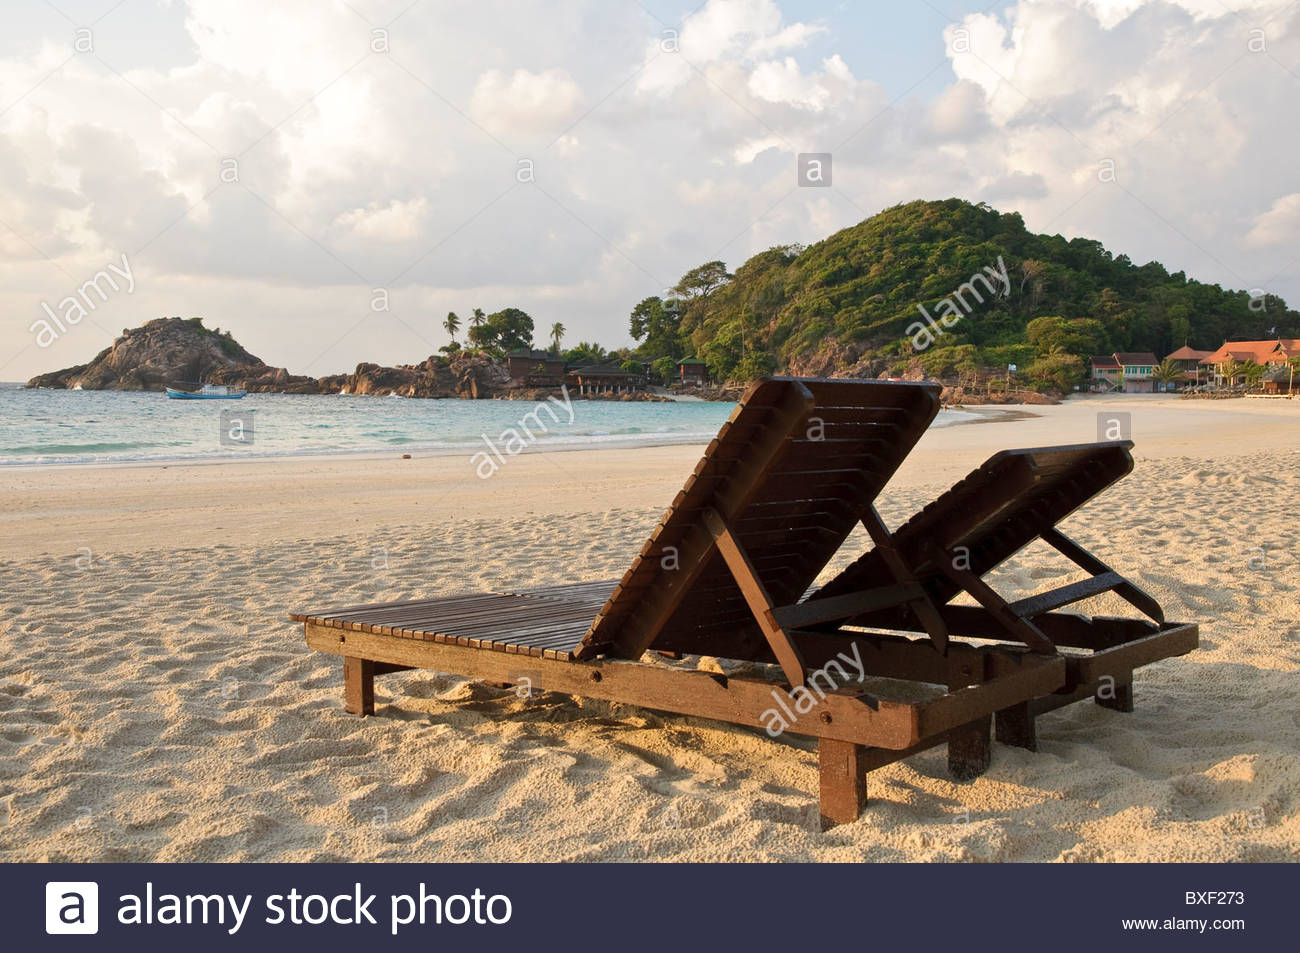 Beach with sun loungers in the morning, Pulau Redang island, Malaysia, Southeast Asia, Asia - Stock Image